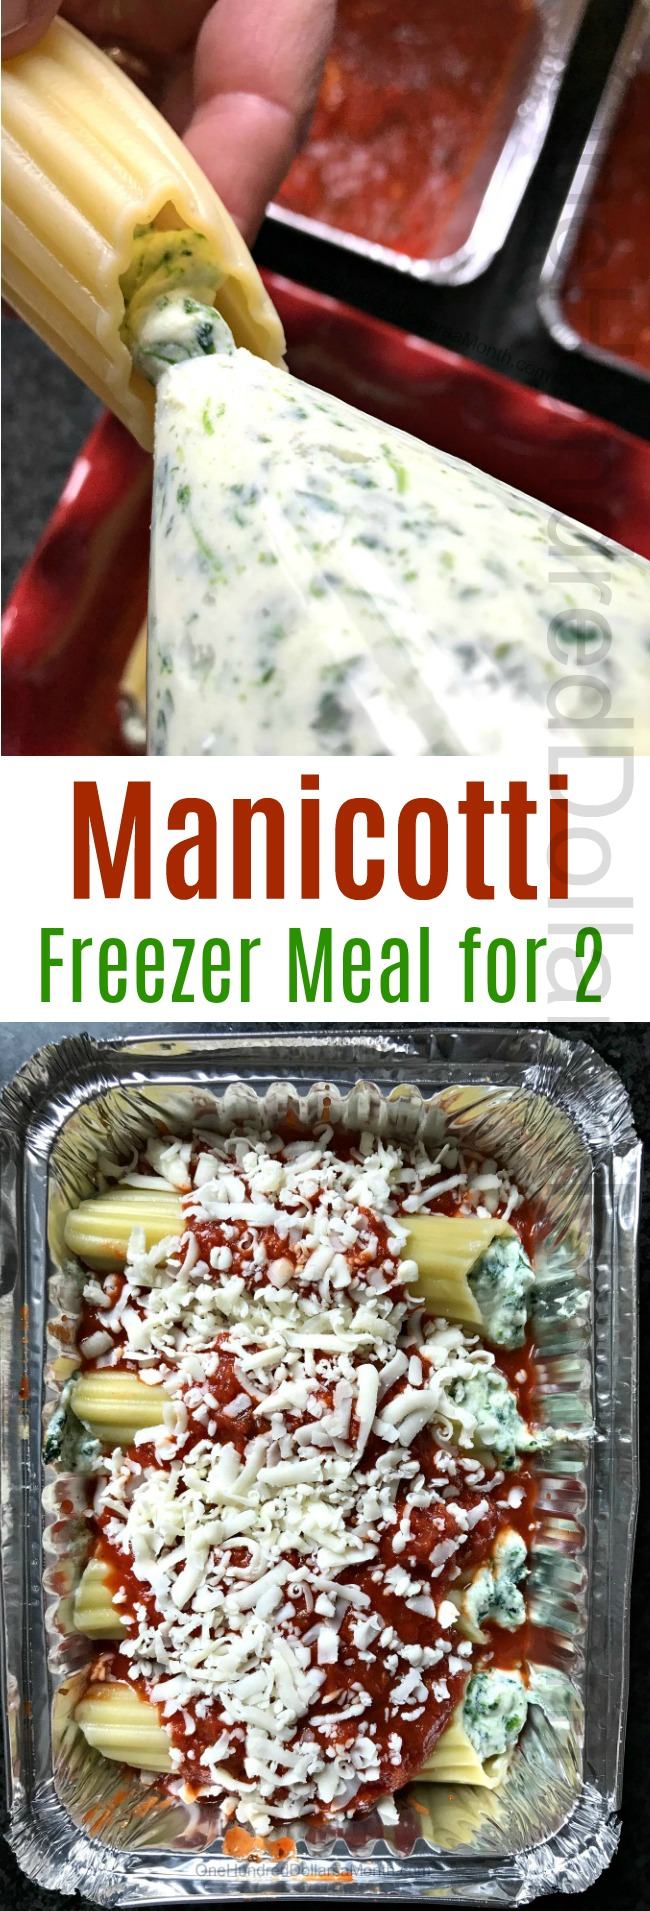 Manicotti Freezer Meal Recipe for 2